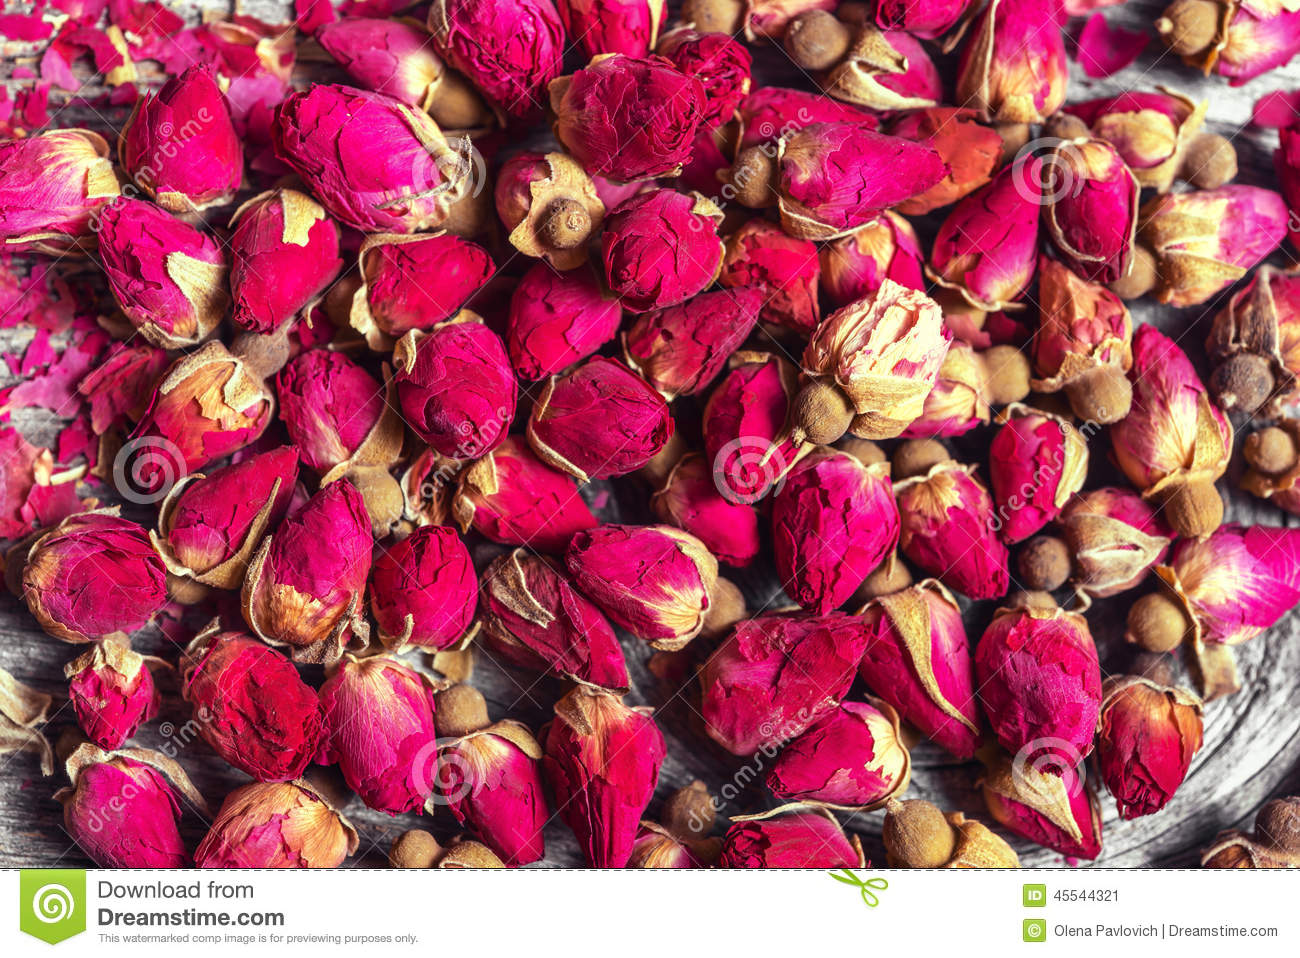 Small dried tea rose buds